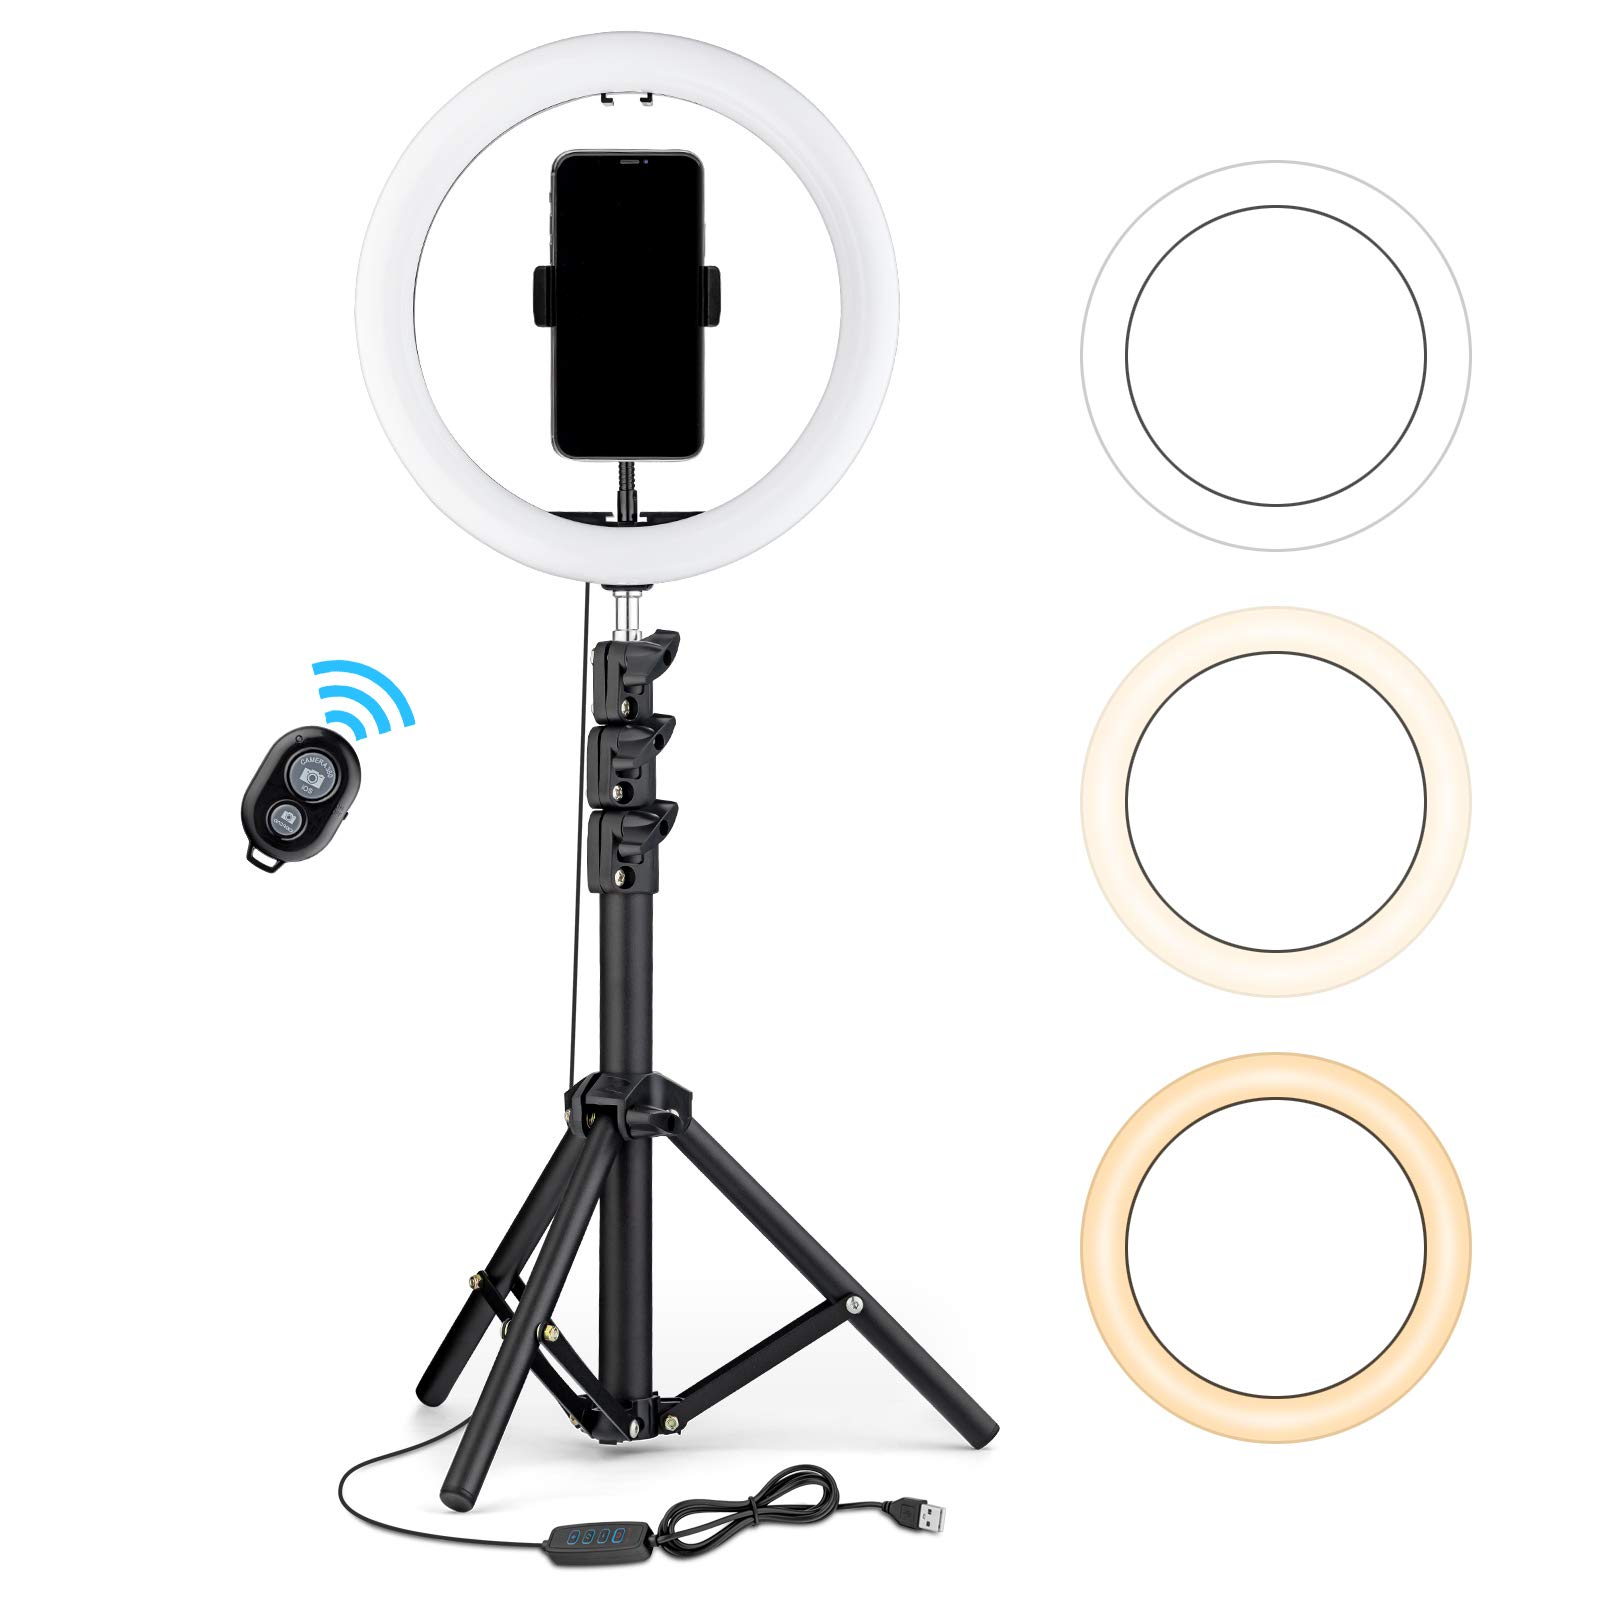 """OJelay 10"""" LED Selfie Ring Light(Black) with 1.3m Tripod Stand & Phone Holder, 120PCS LED Bulbs with 3 Lighting Modes for Live Stream/YouTube/TikTok Video/Makeup/Salon, Compatible with iPhone, Android"""